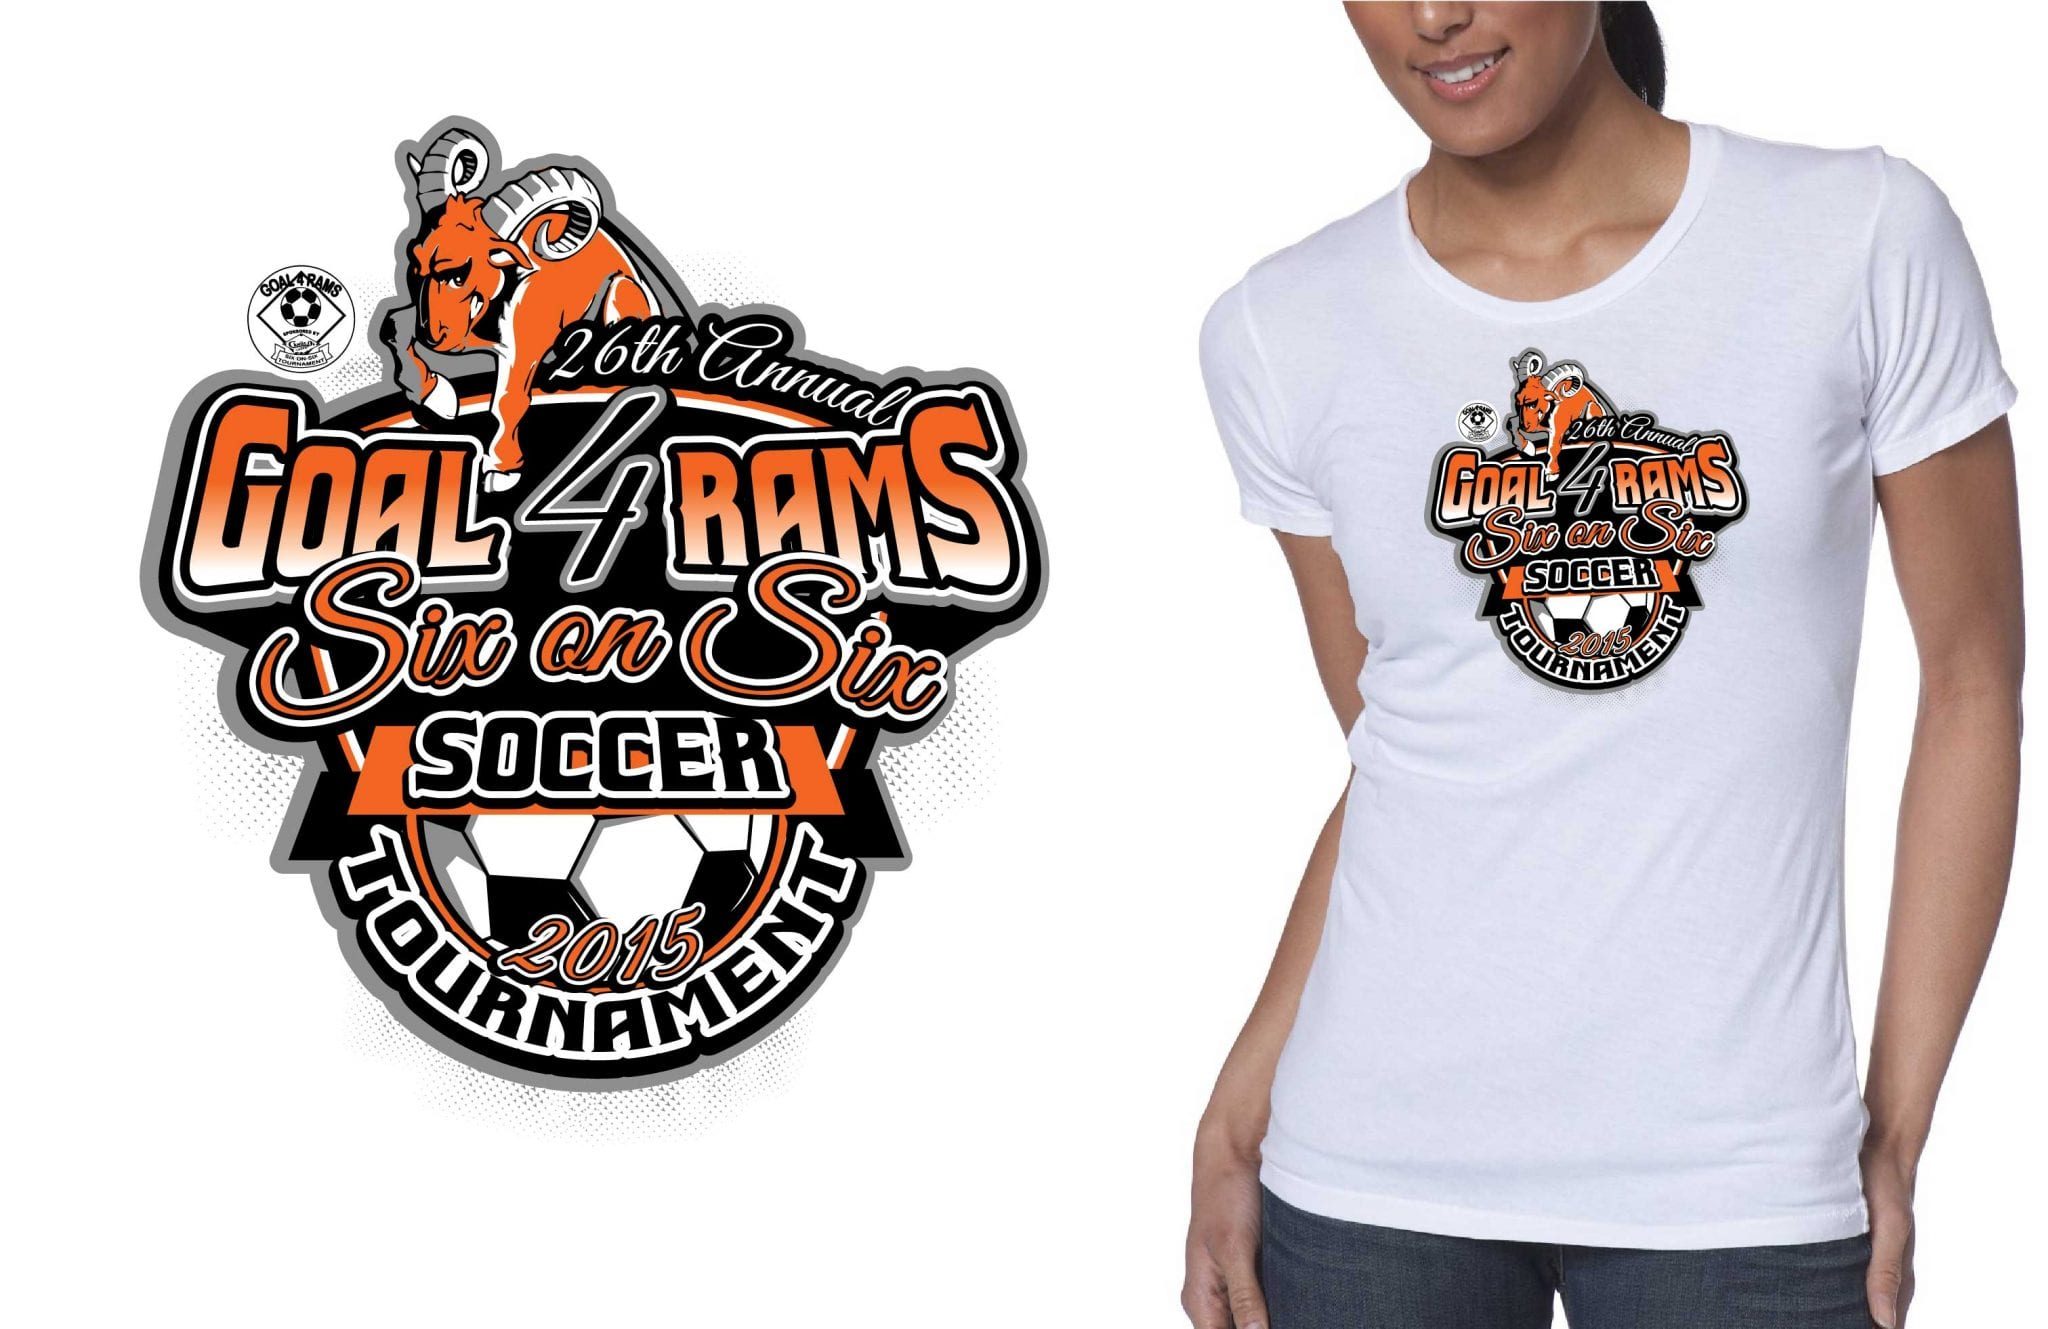 2015 26th annual goal 4 rams six on six soccer tournament cool soccer t shirt logo design color separated by graphic designer at ur art studio cleveland - Soccer T Shirt Design Ideas